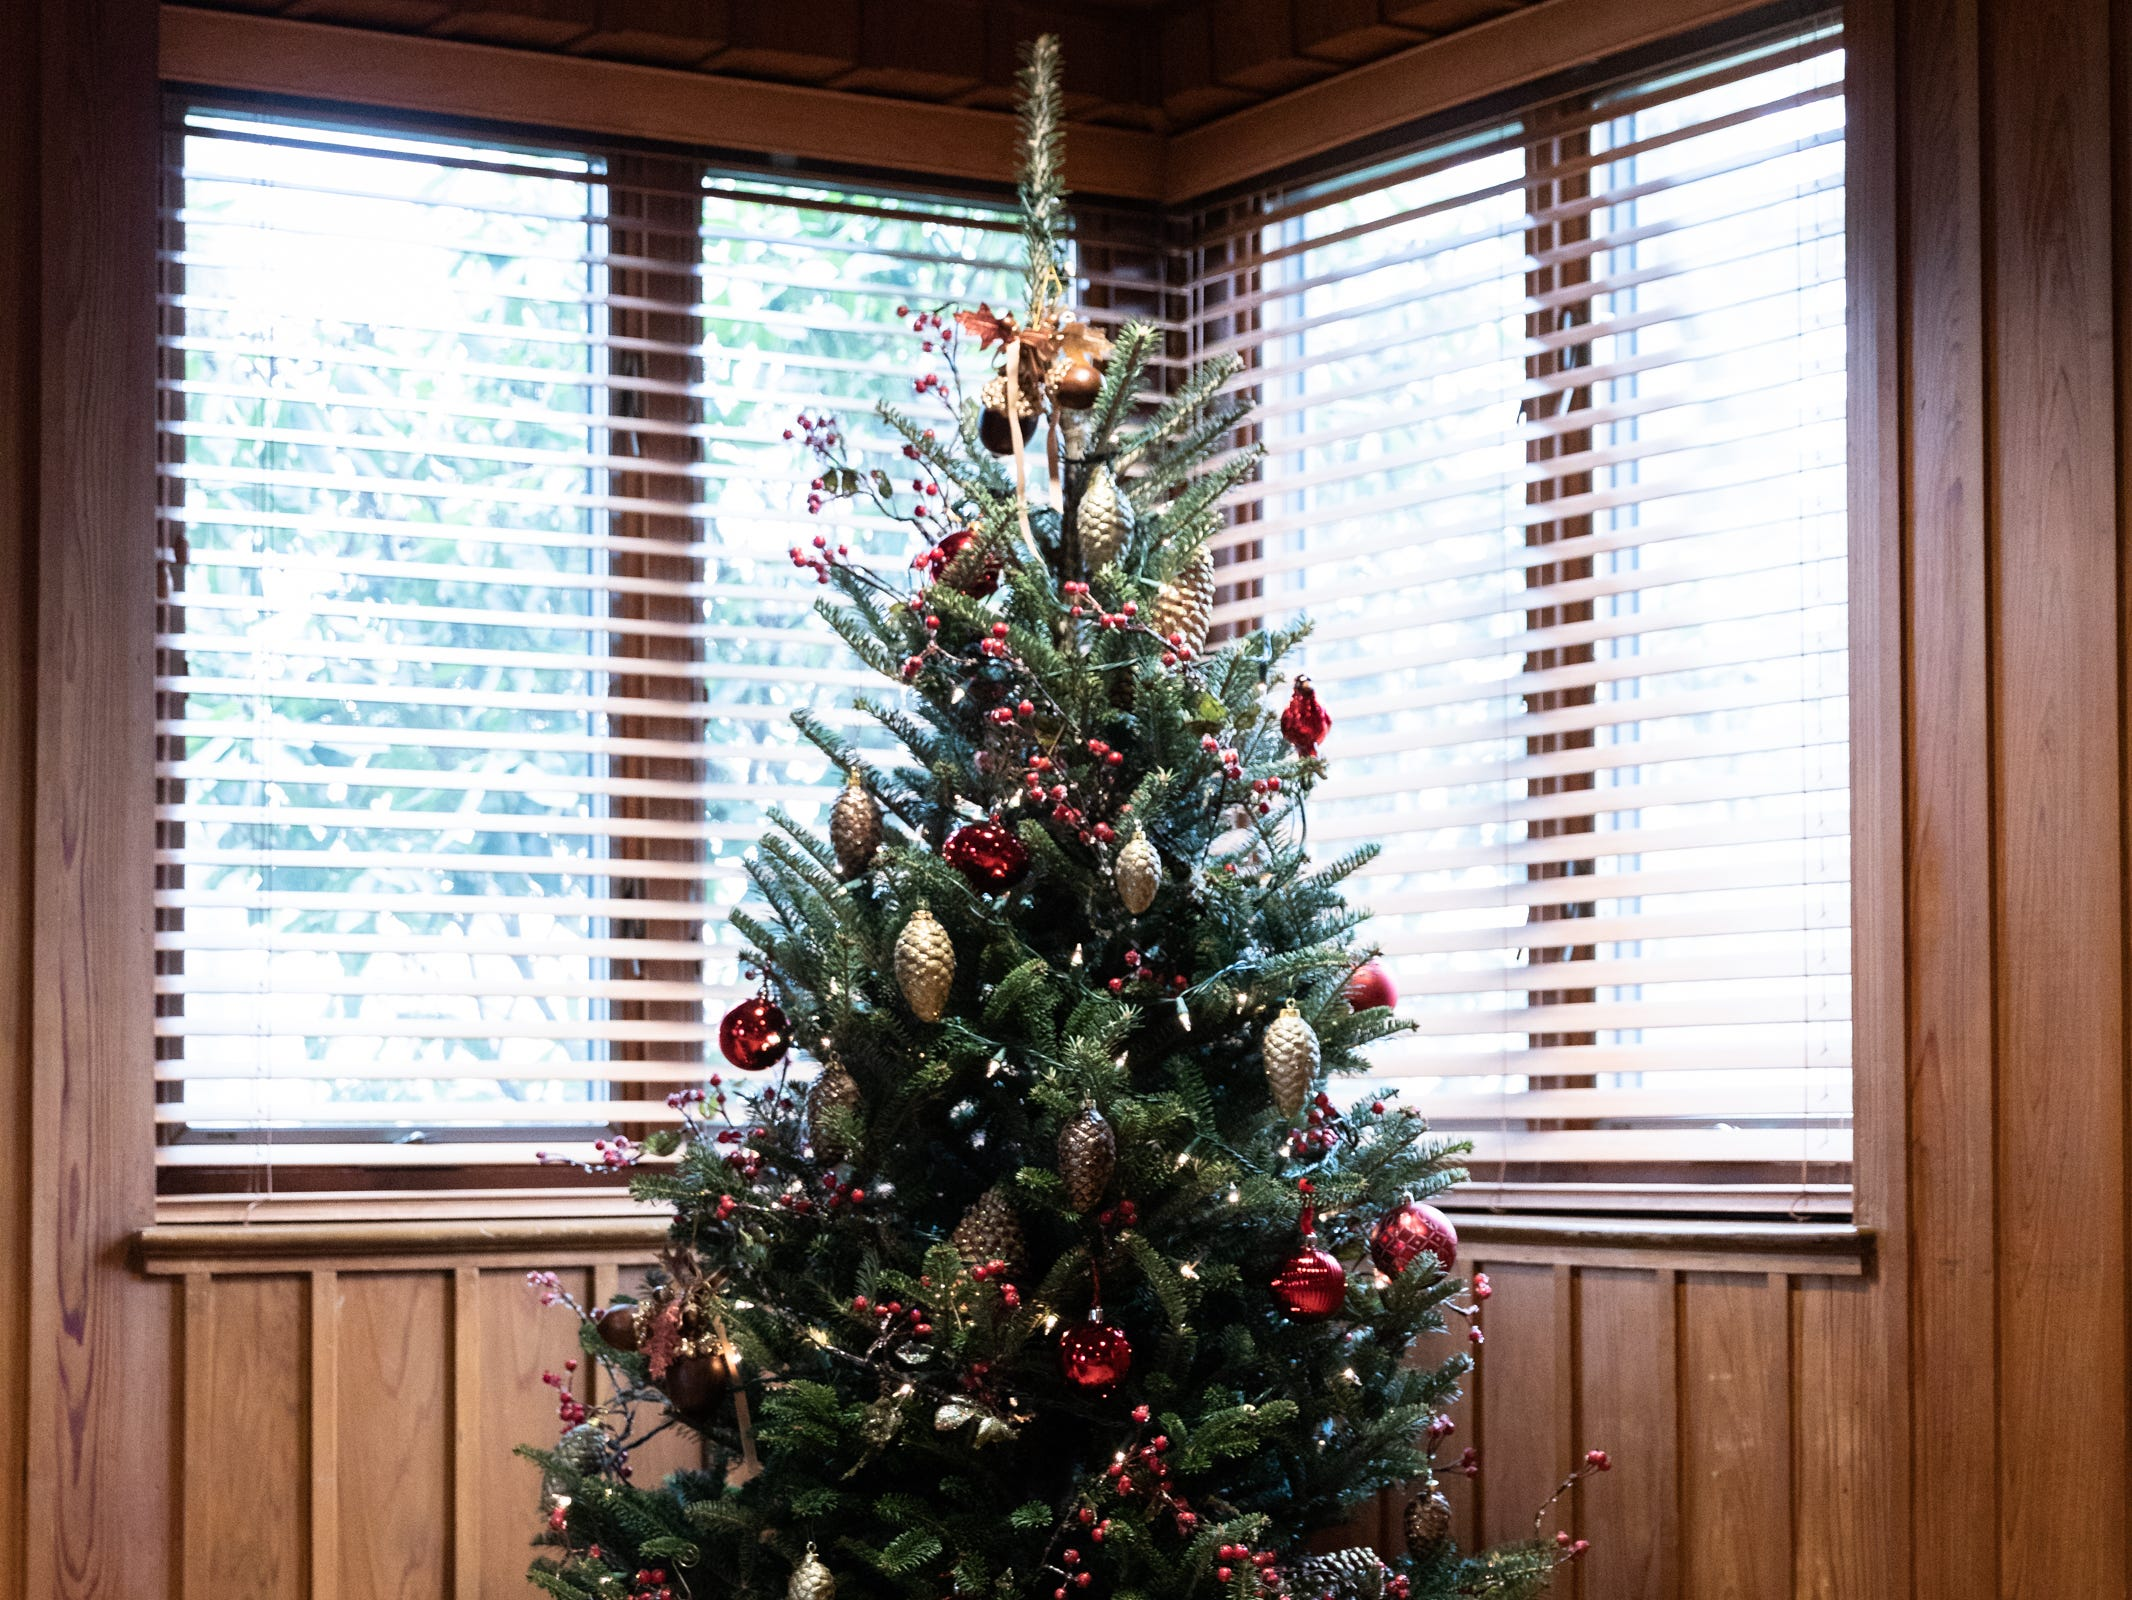 A Christmas tree in the den of the Governor's Western Residence on Patton Mountain Road in Asheville.